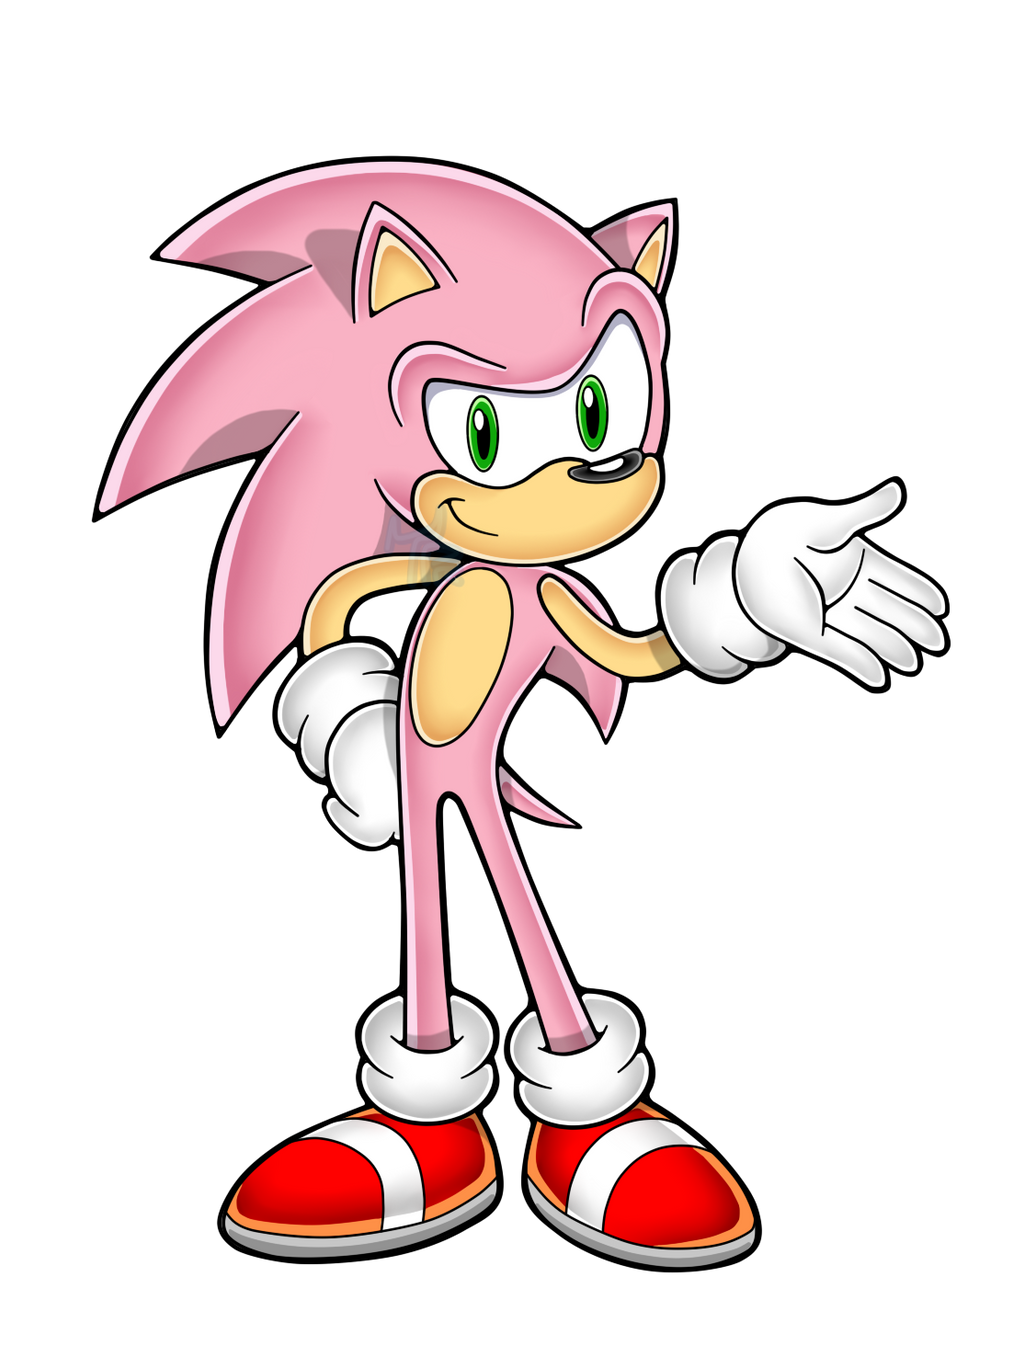 pink_sonic_sa_style_by_sarkenthehedgehog_dc8jbvo-fullview.png